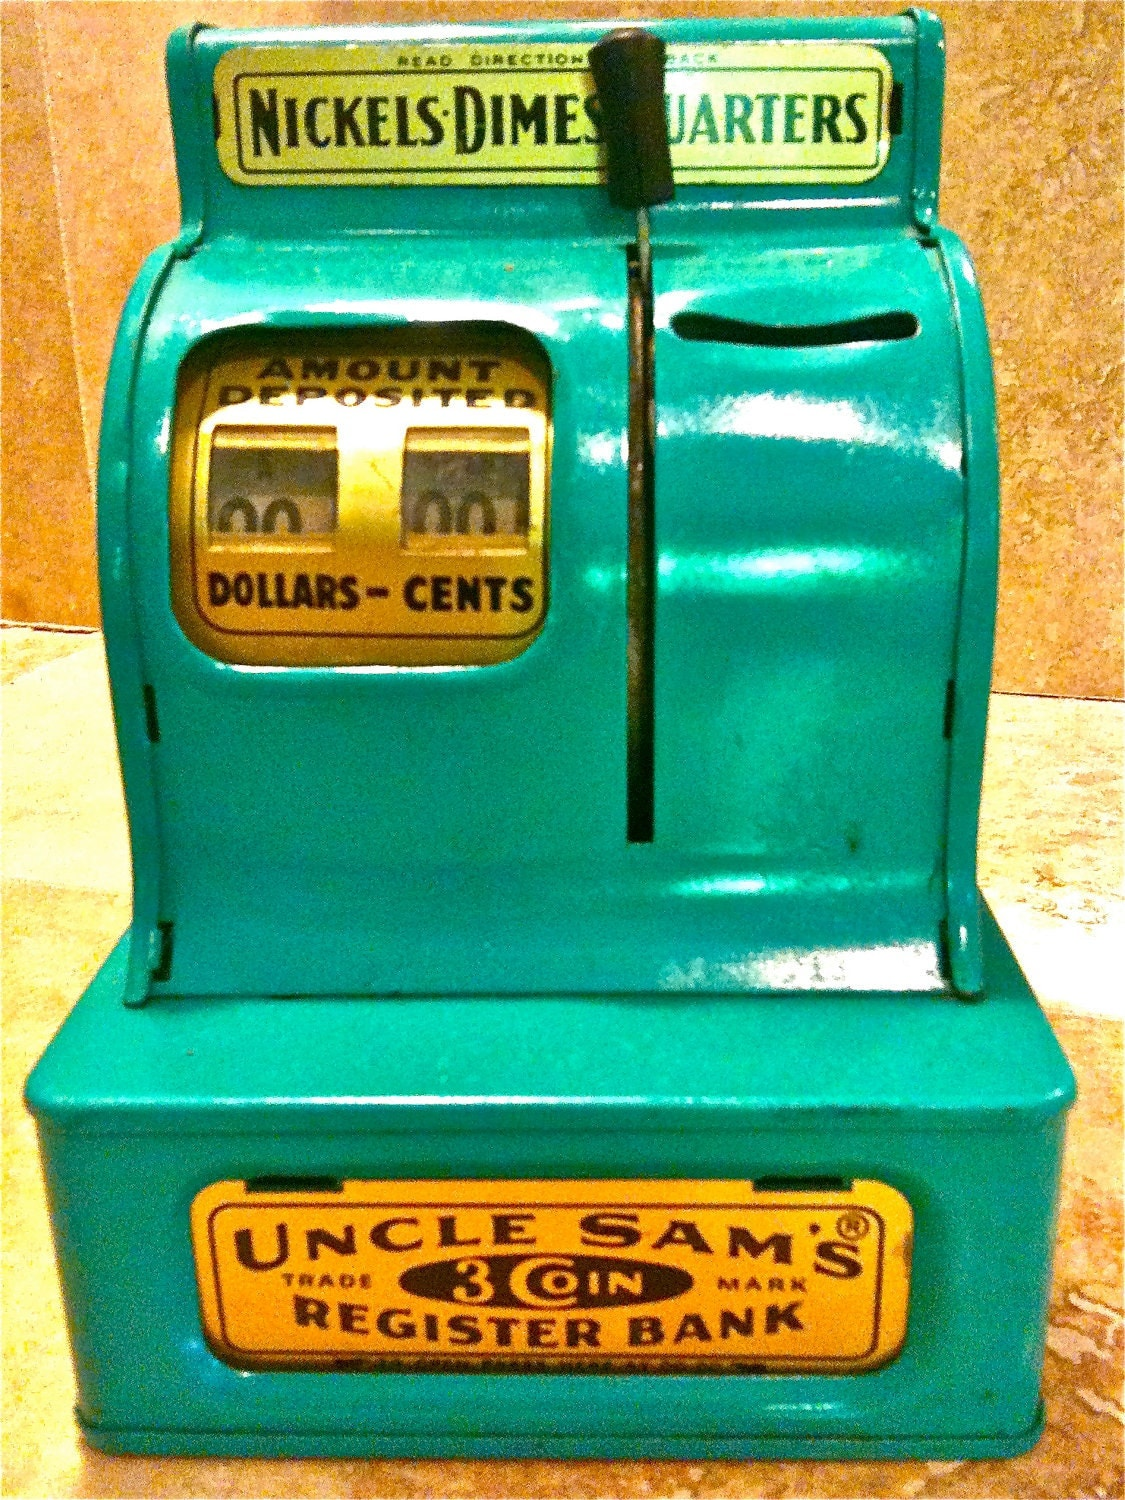 Uncle Sam's vintage 3 coin  paper bills children's toy register bank 1950's MCM industrial mint green metal - Hanahouhale